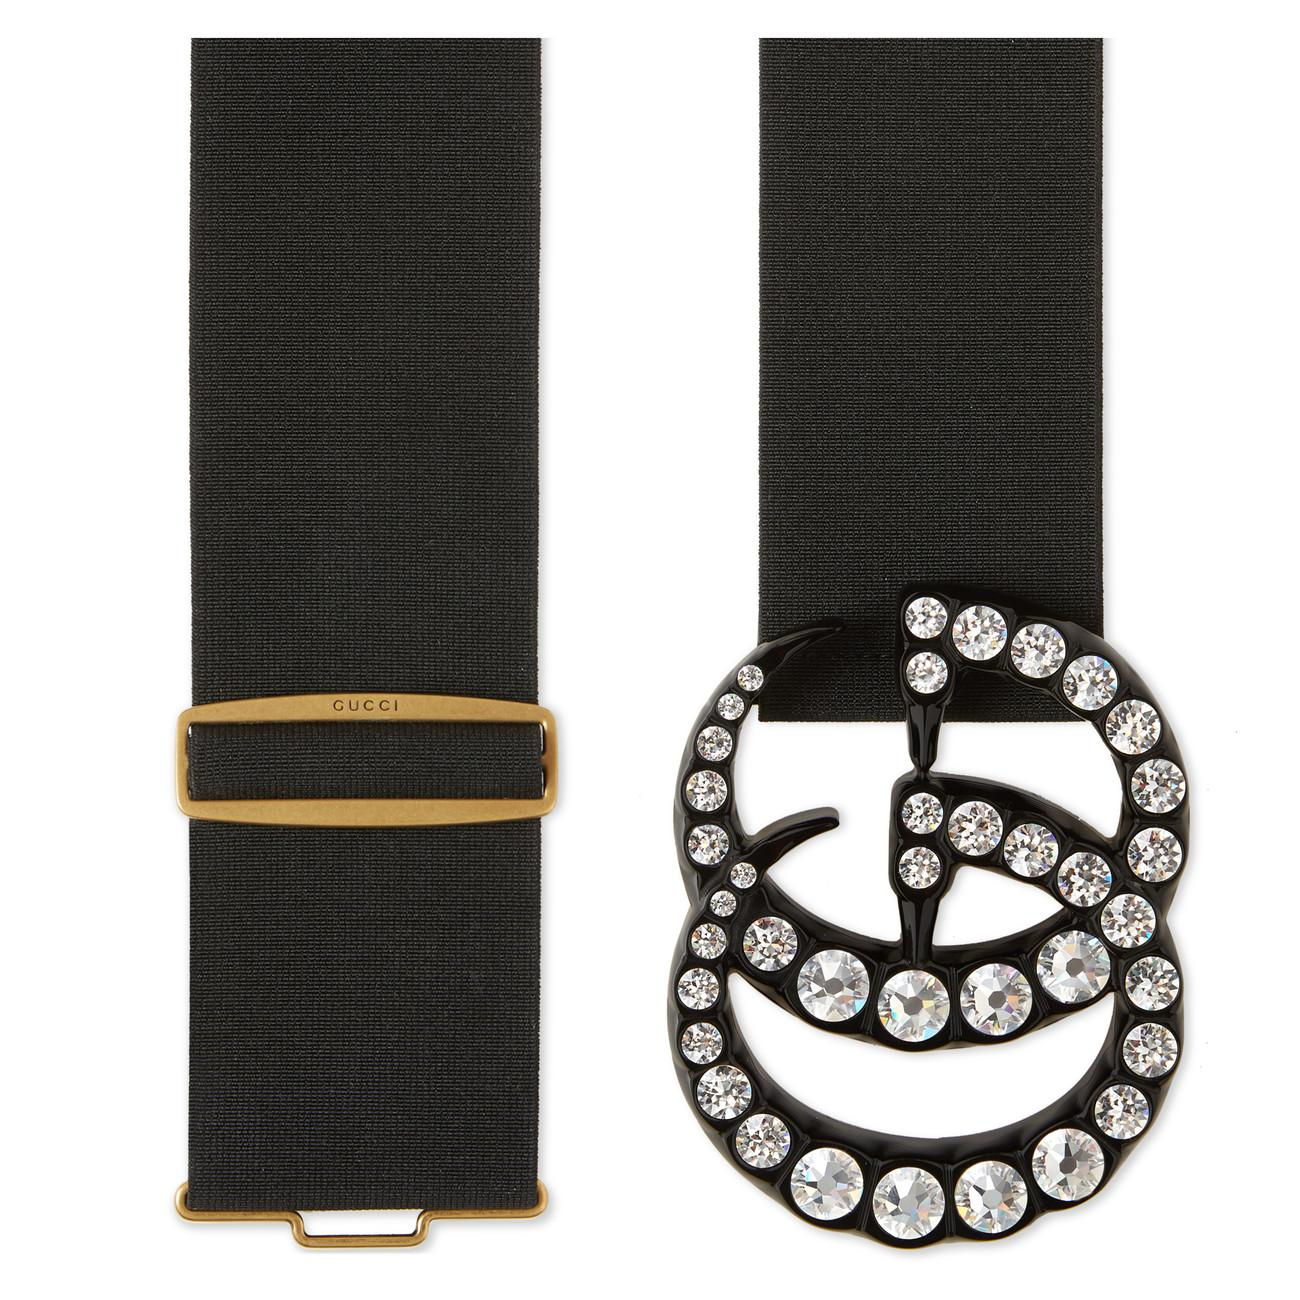 ff4a29dab8f Gucci Elastic Belt With Crystal Double G Buckle in Black - Save 14 ...